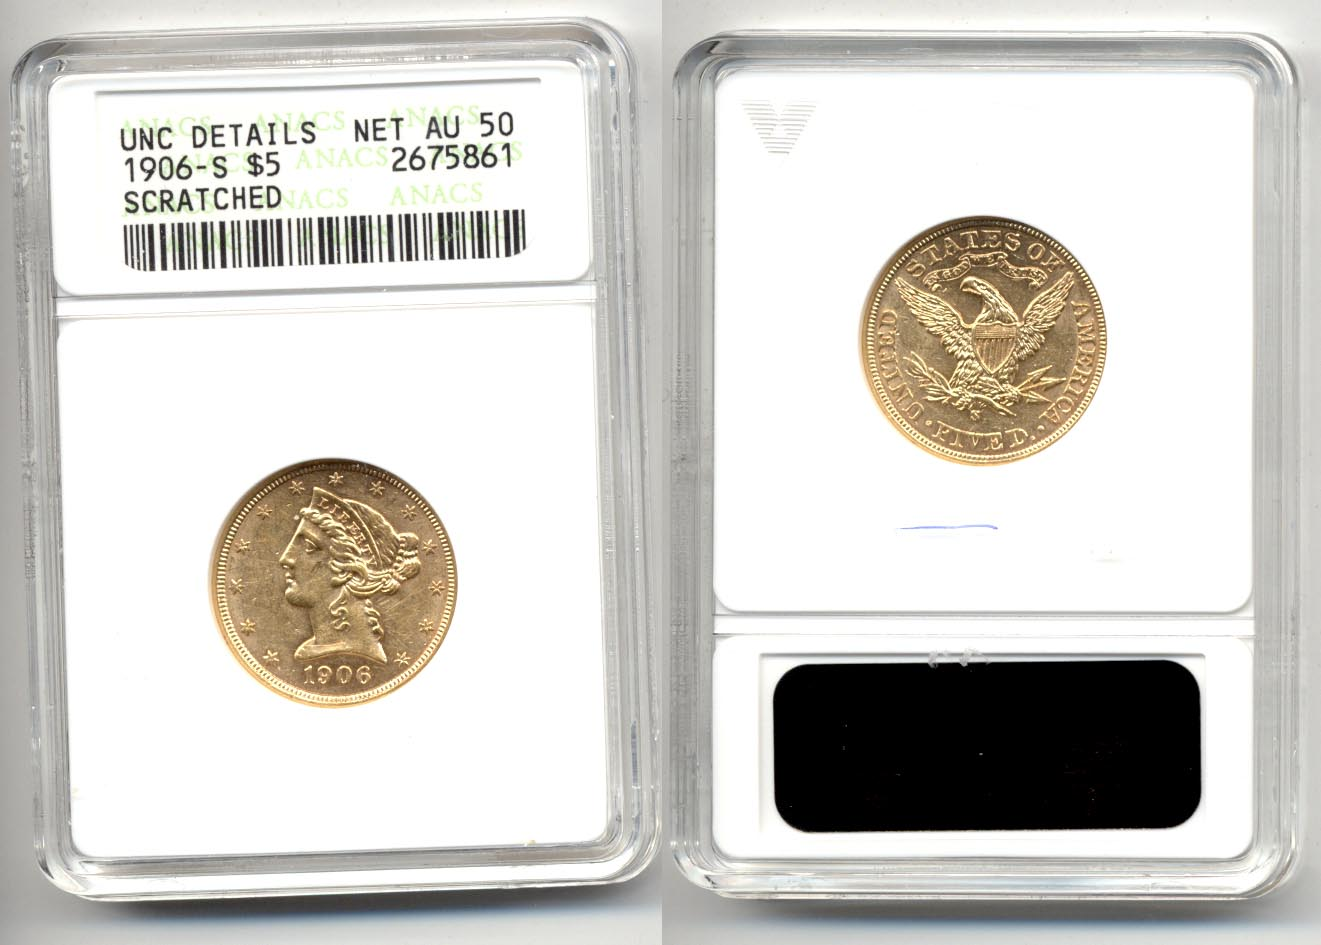 1906-S $5.00 Gold Half Eagle ANACS net AU-50